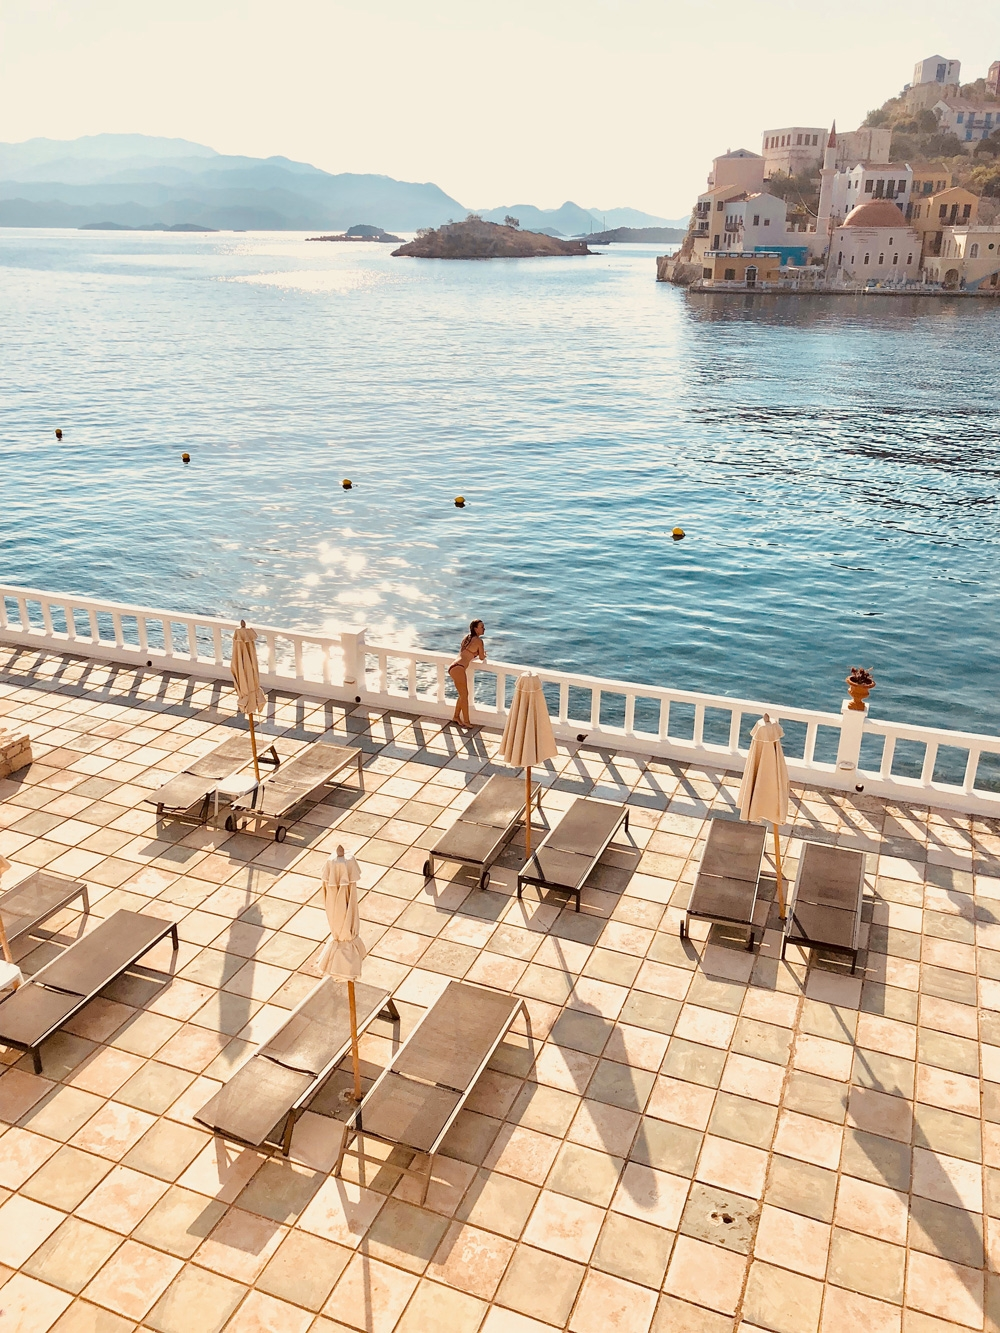 A tiled balcony with sun loungers and umbrellas overlooking the sun kissed water of Kastellorizo